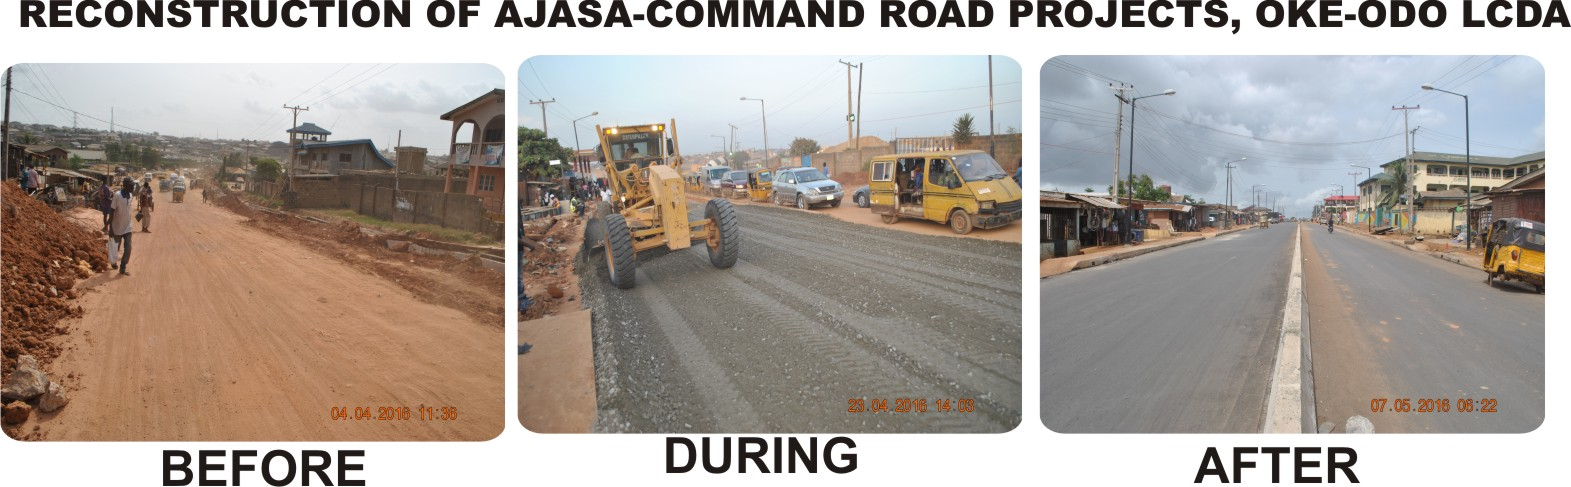 RECONSTRUCTION OF AJASA-COMMAND ROAD PROJECTS, OKE-ODO LCDA